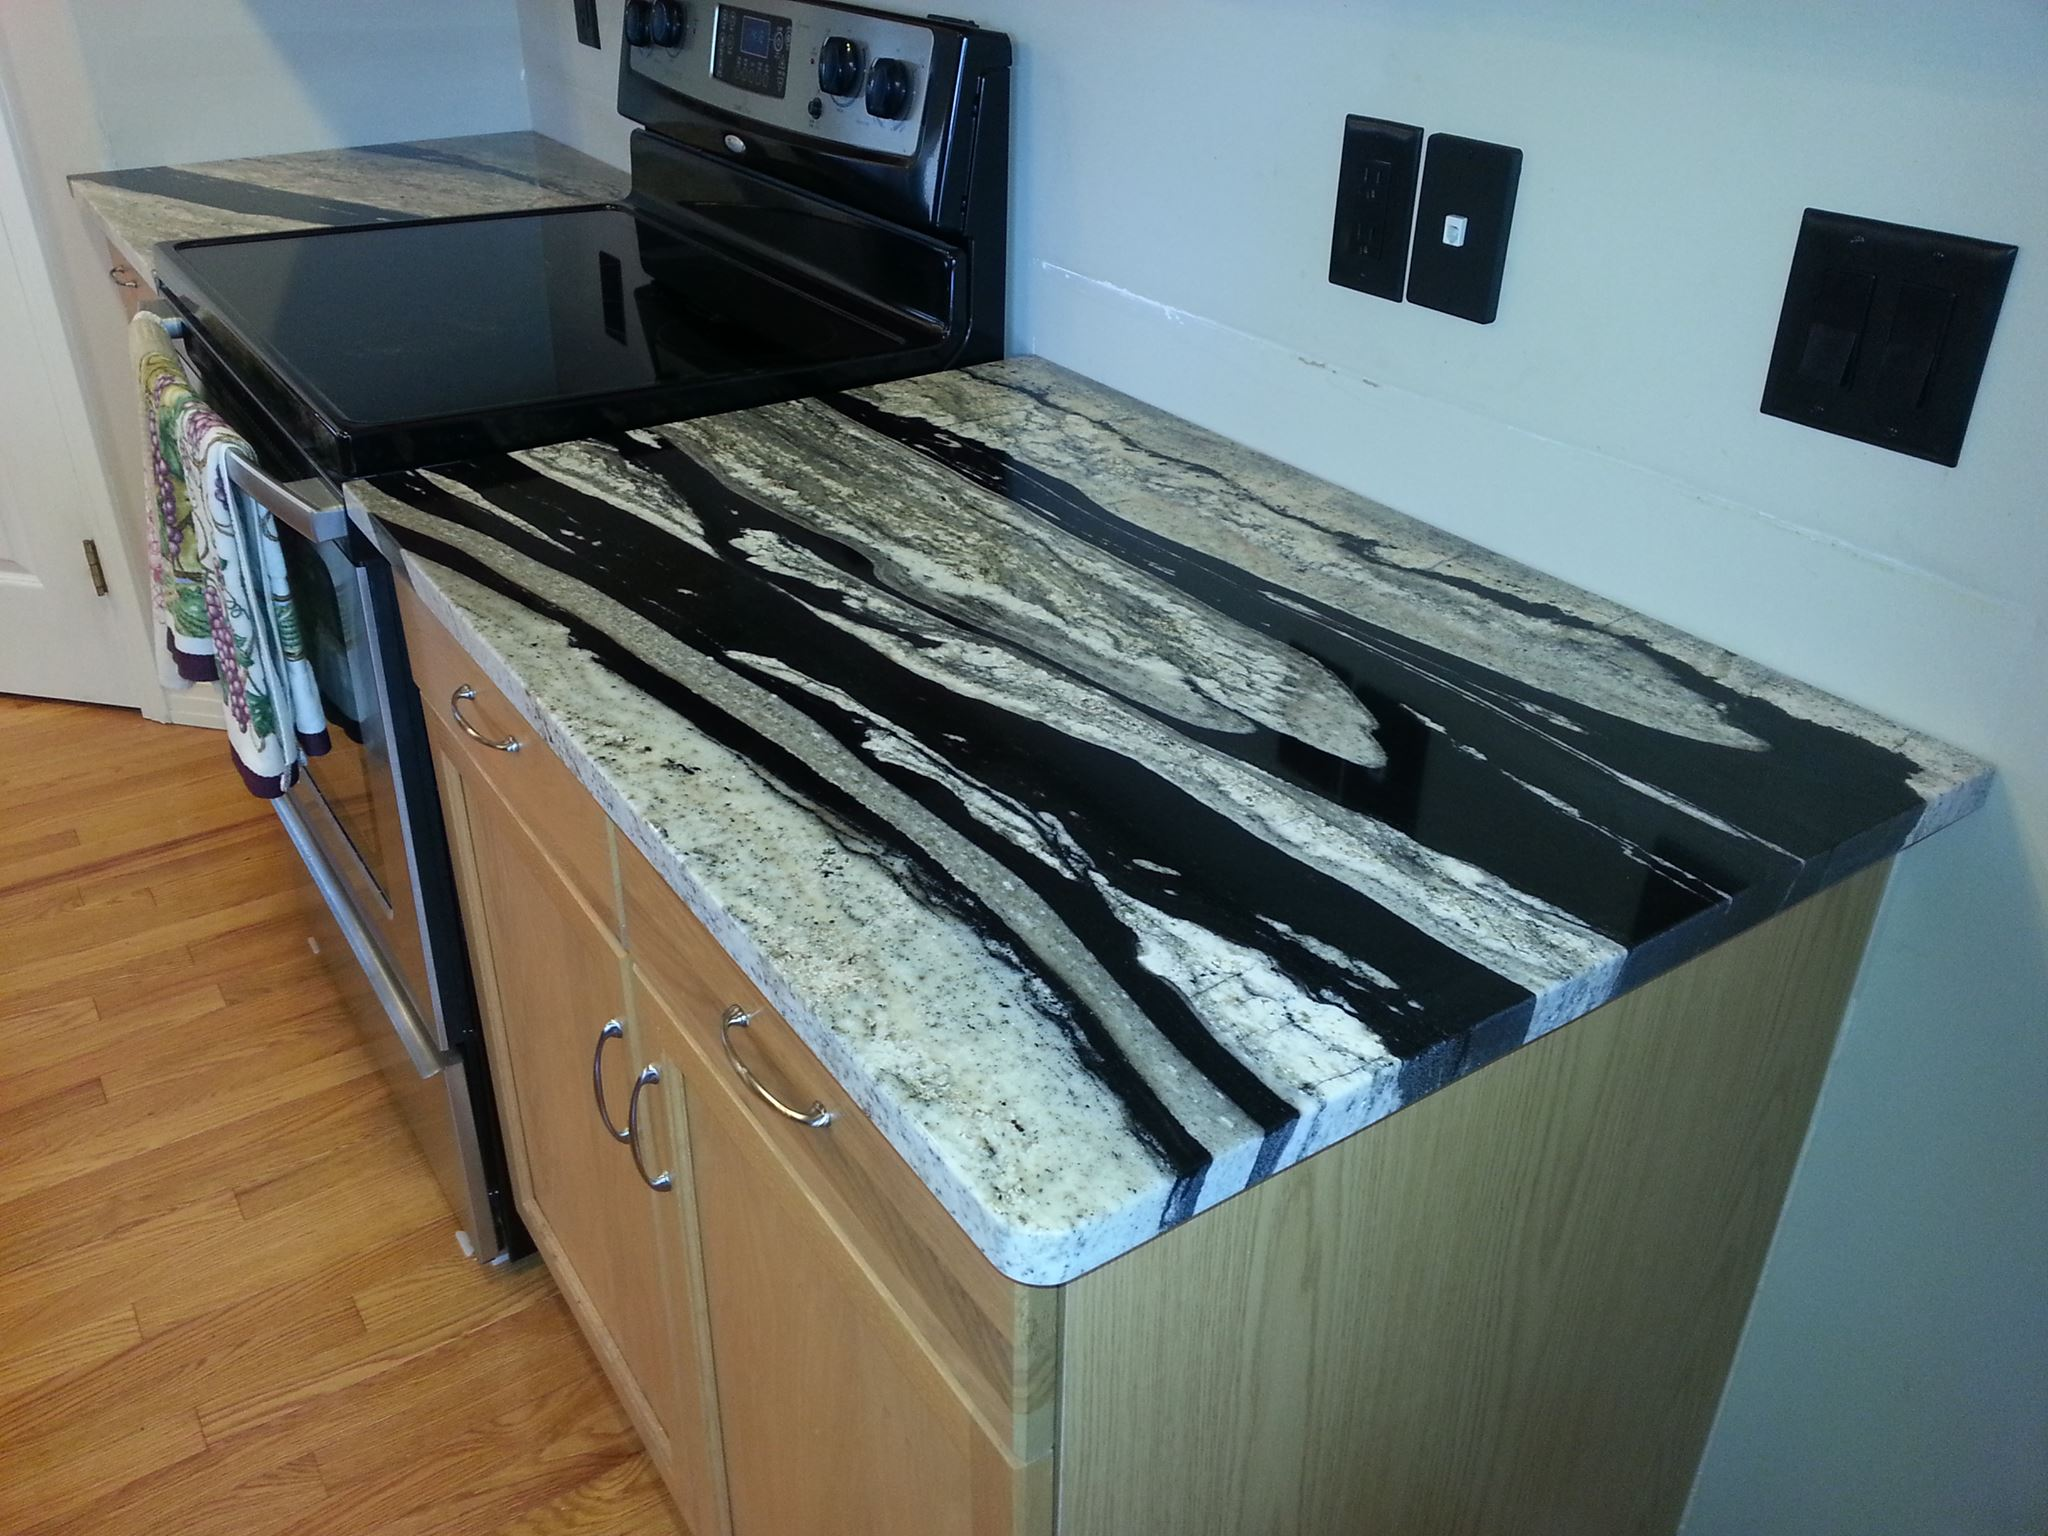 Kitchen Countertops Edmonton | Stoneworks Granite & Quartz